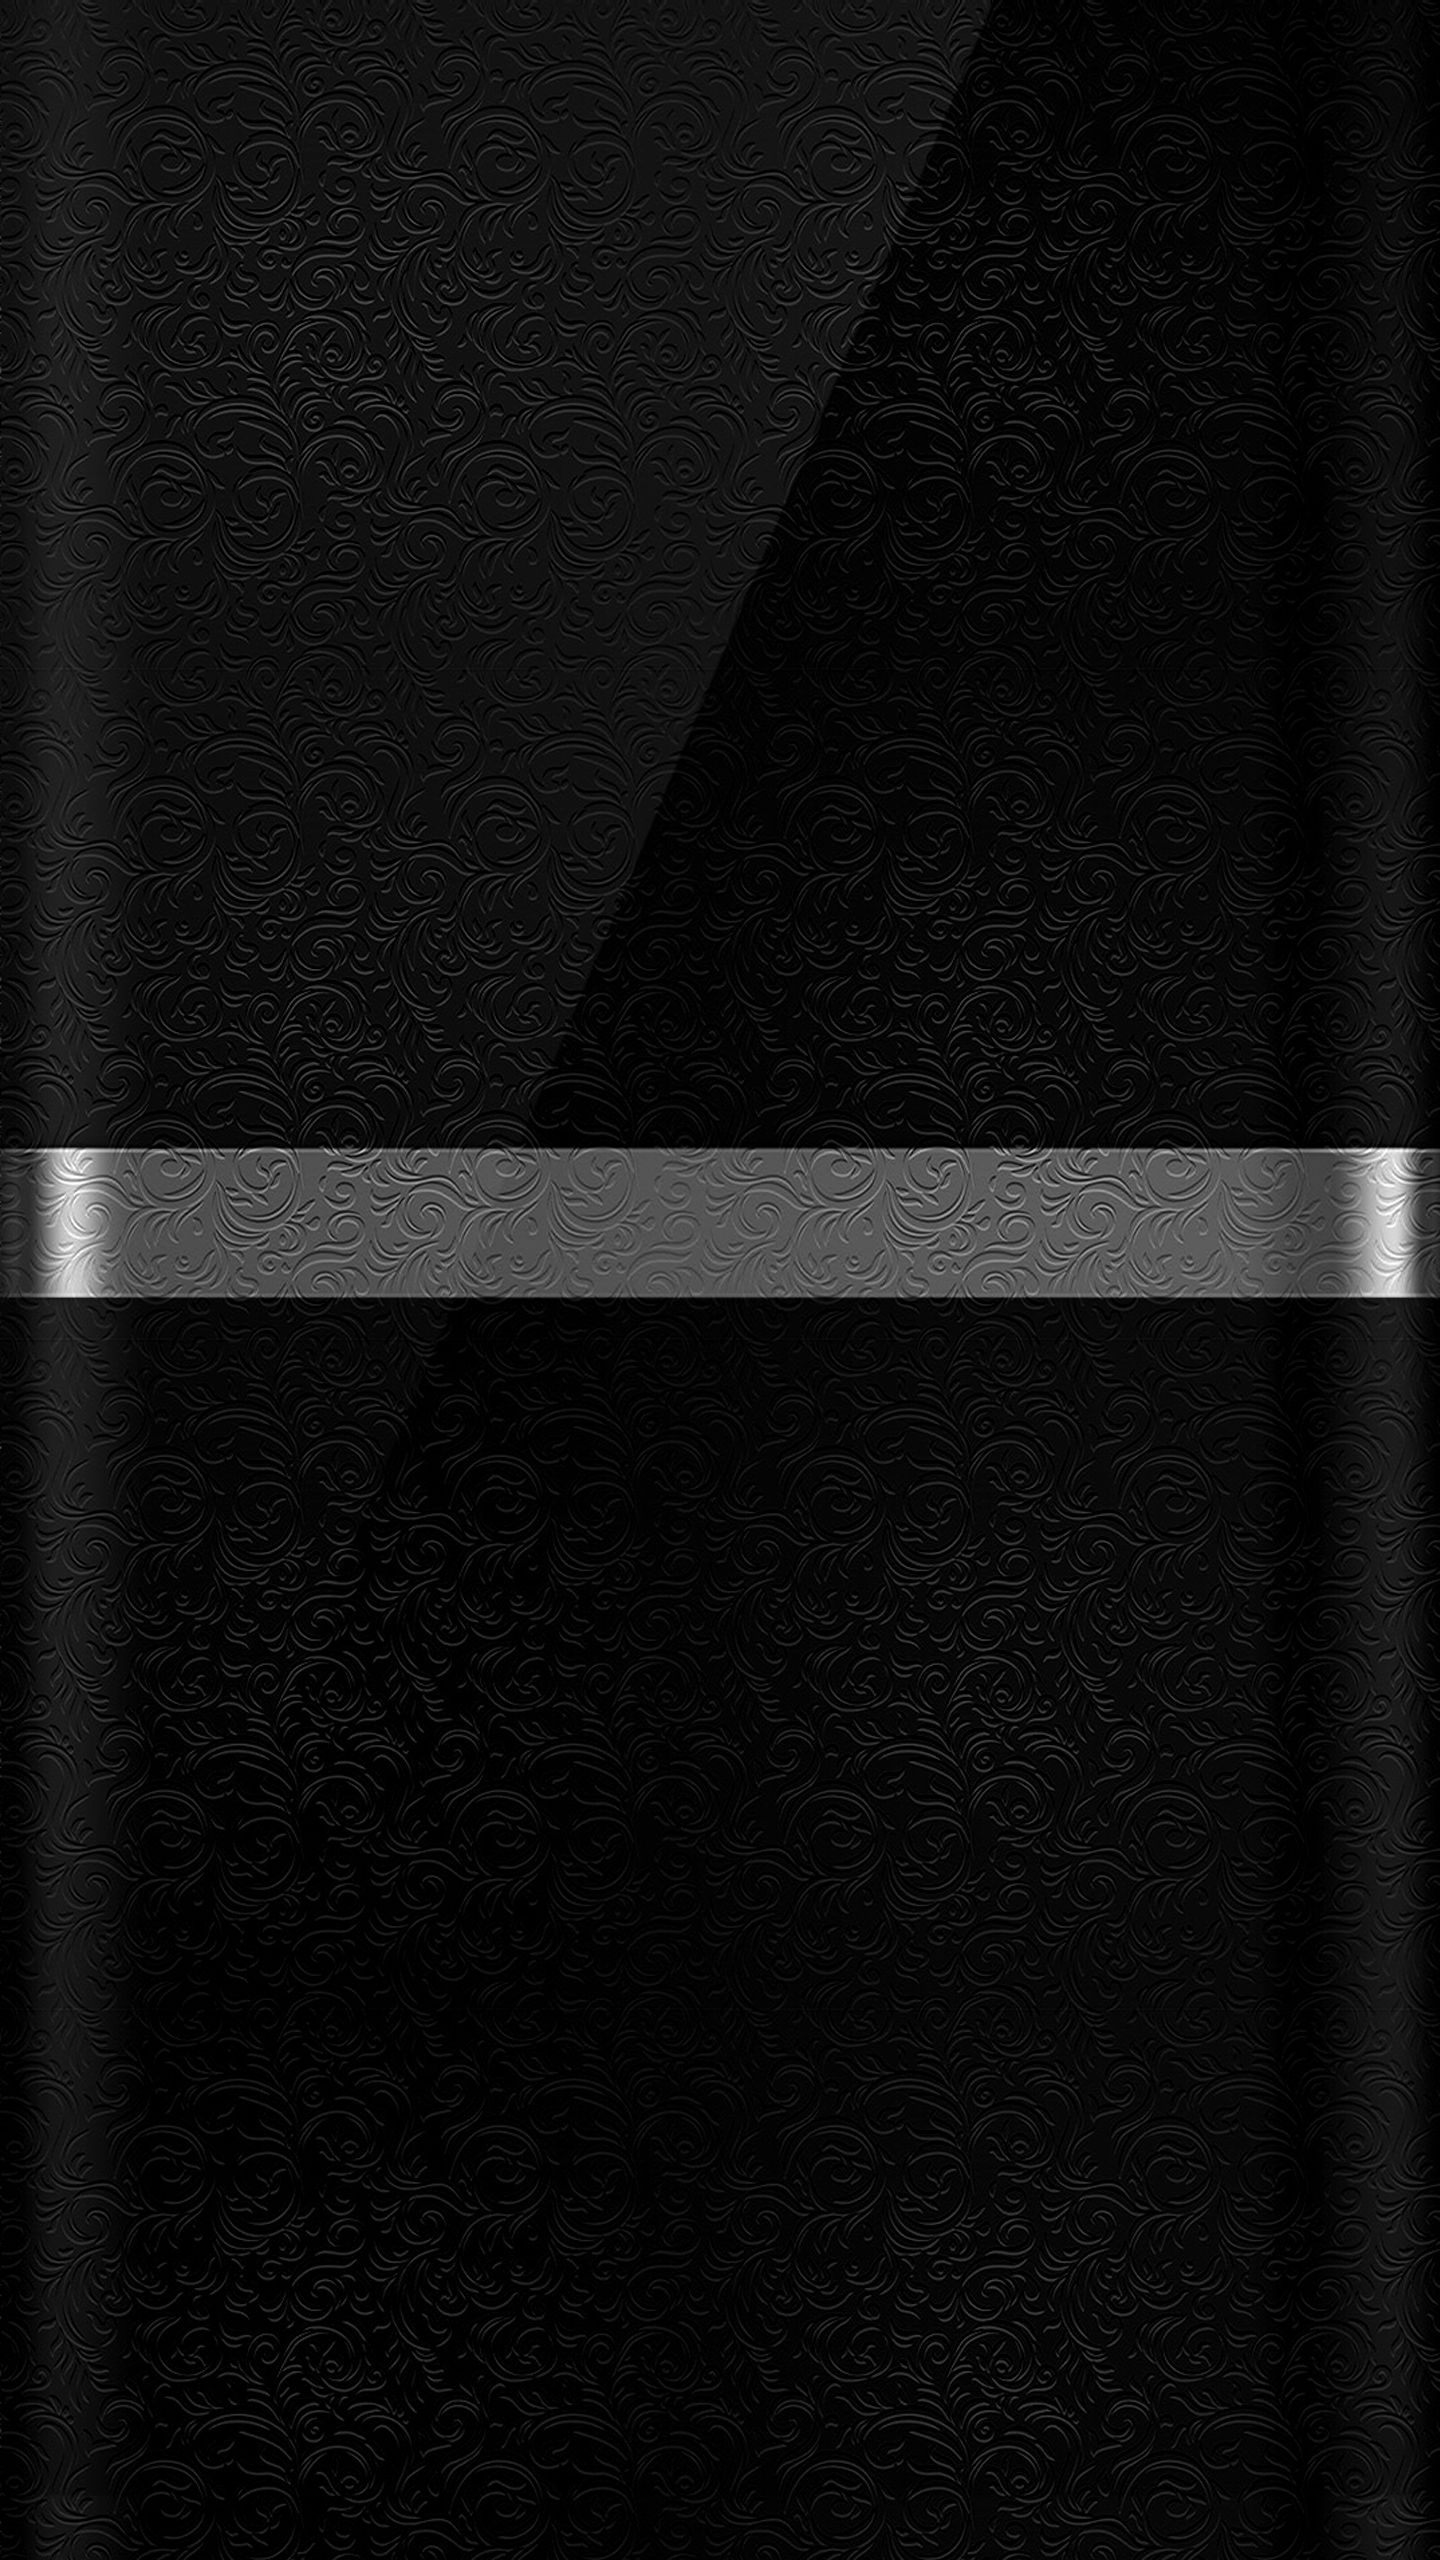 Dark S7 Edge Wallpaper 01 Black And Blue Floral Pattern Hd Wallpapers Wallpapers Download High Resolution Wallpapers Android Wallpaper Black Floral Texture High Resolution Wallpapers